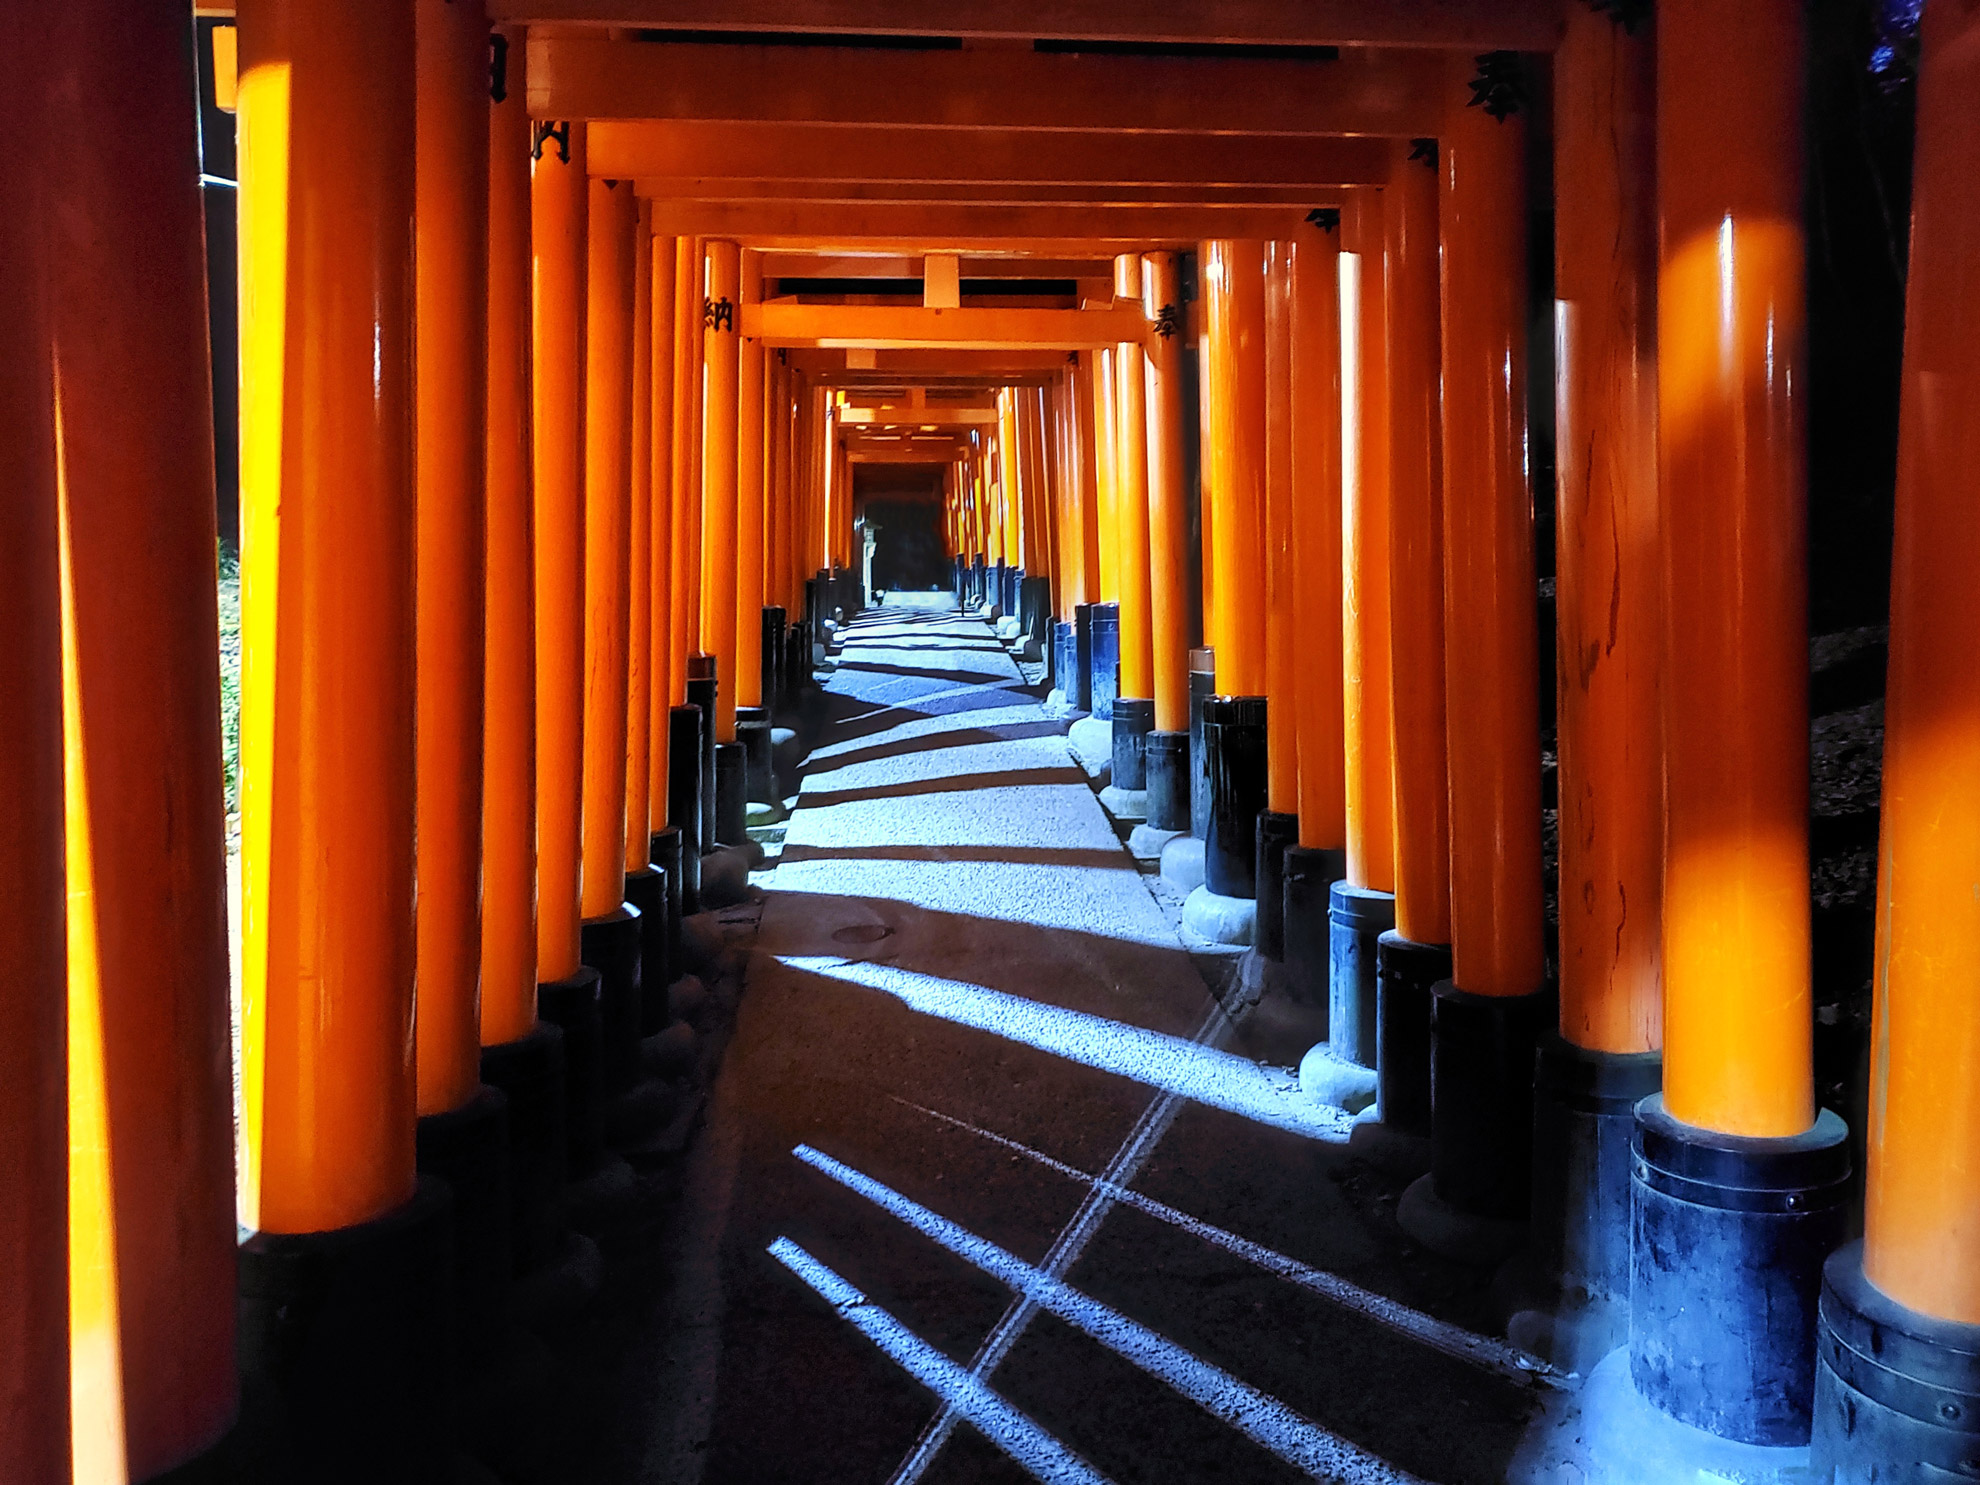 Immerse yourself into the culture and history that makes Fushimi Inari Shrine the No1. Shrine in Japan.